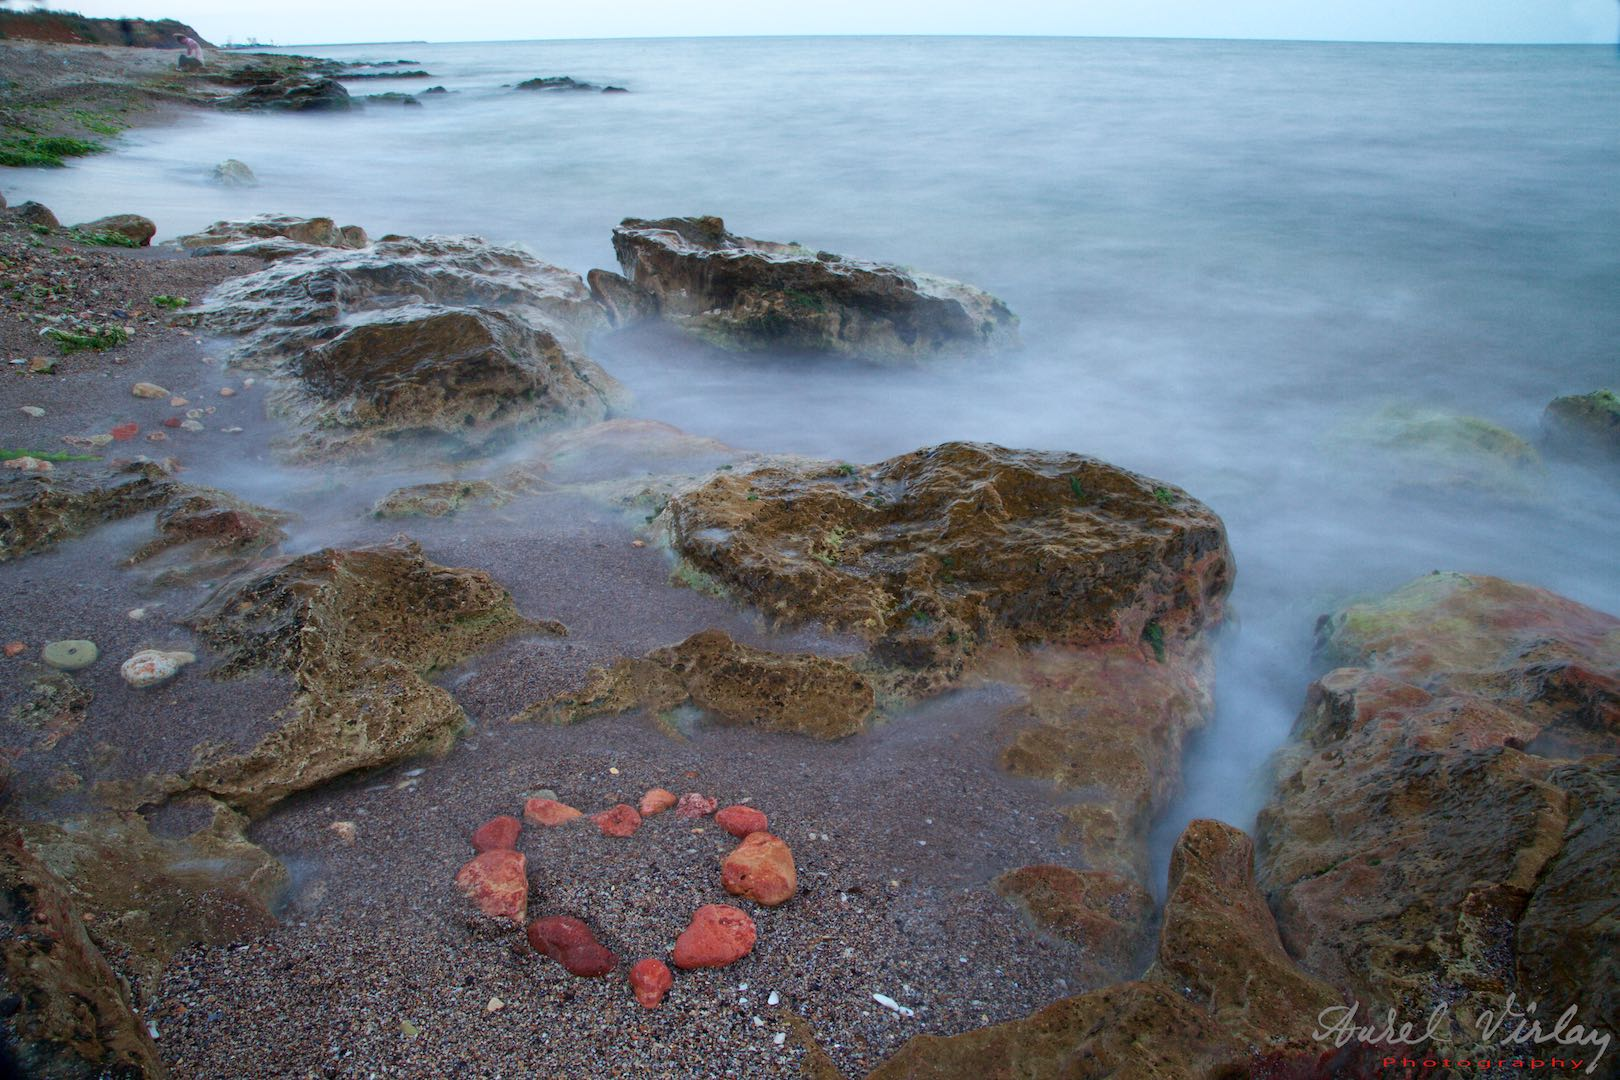 Heart of red rocks - Long time exposure photo with Black Sea waves like clouds